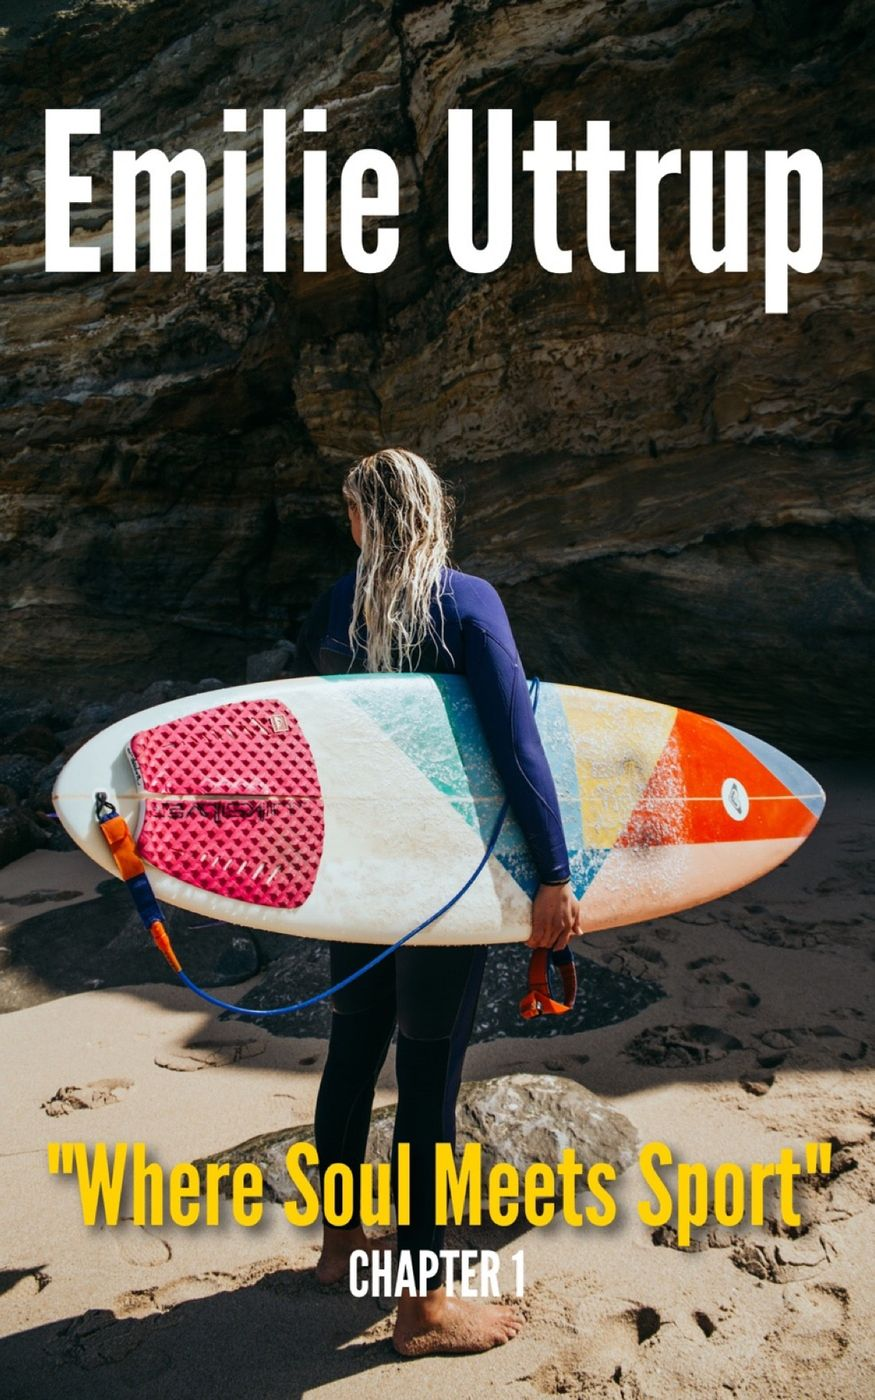 Professional Roxy Surfer and global LaPoint Camps Ambassador Emilie Uttrup speaks on behalf of her perspective on today's evolving surf community and female representation among the sport.